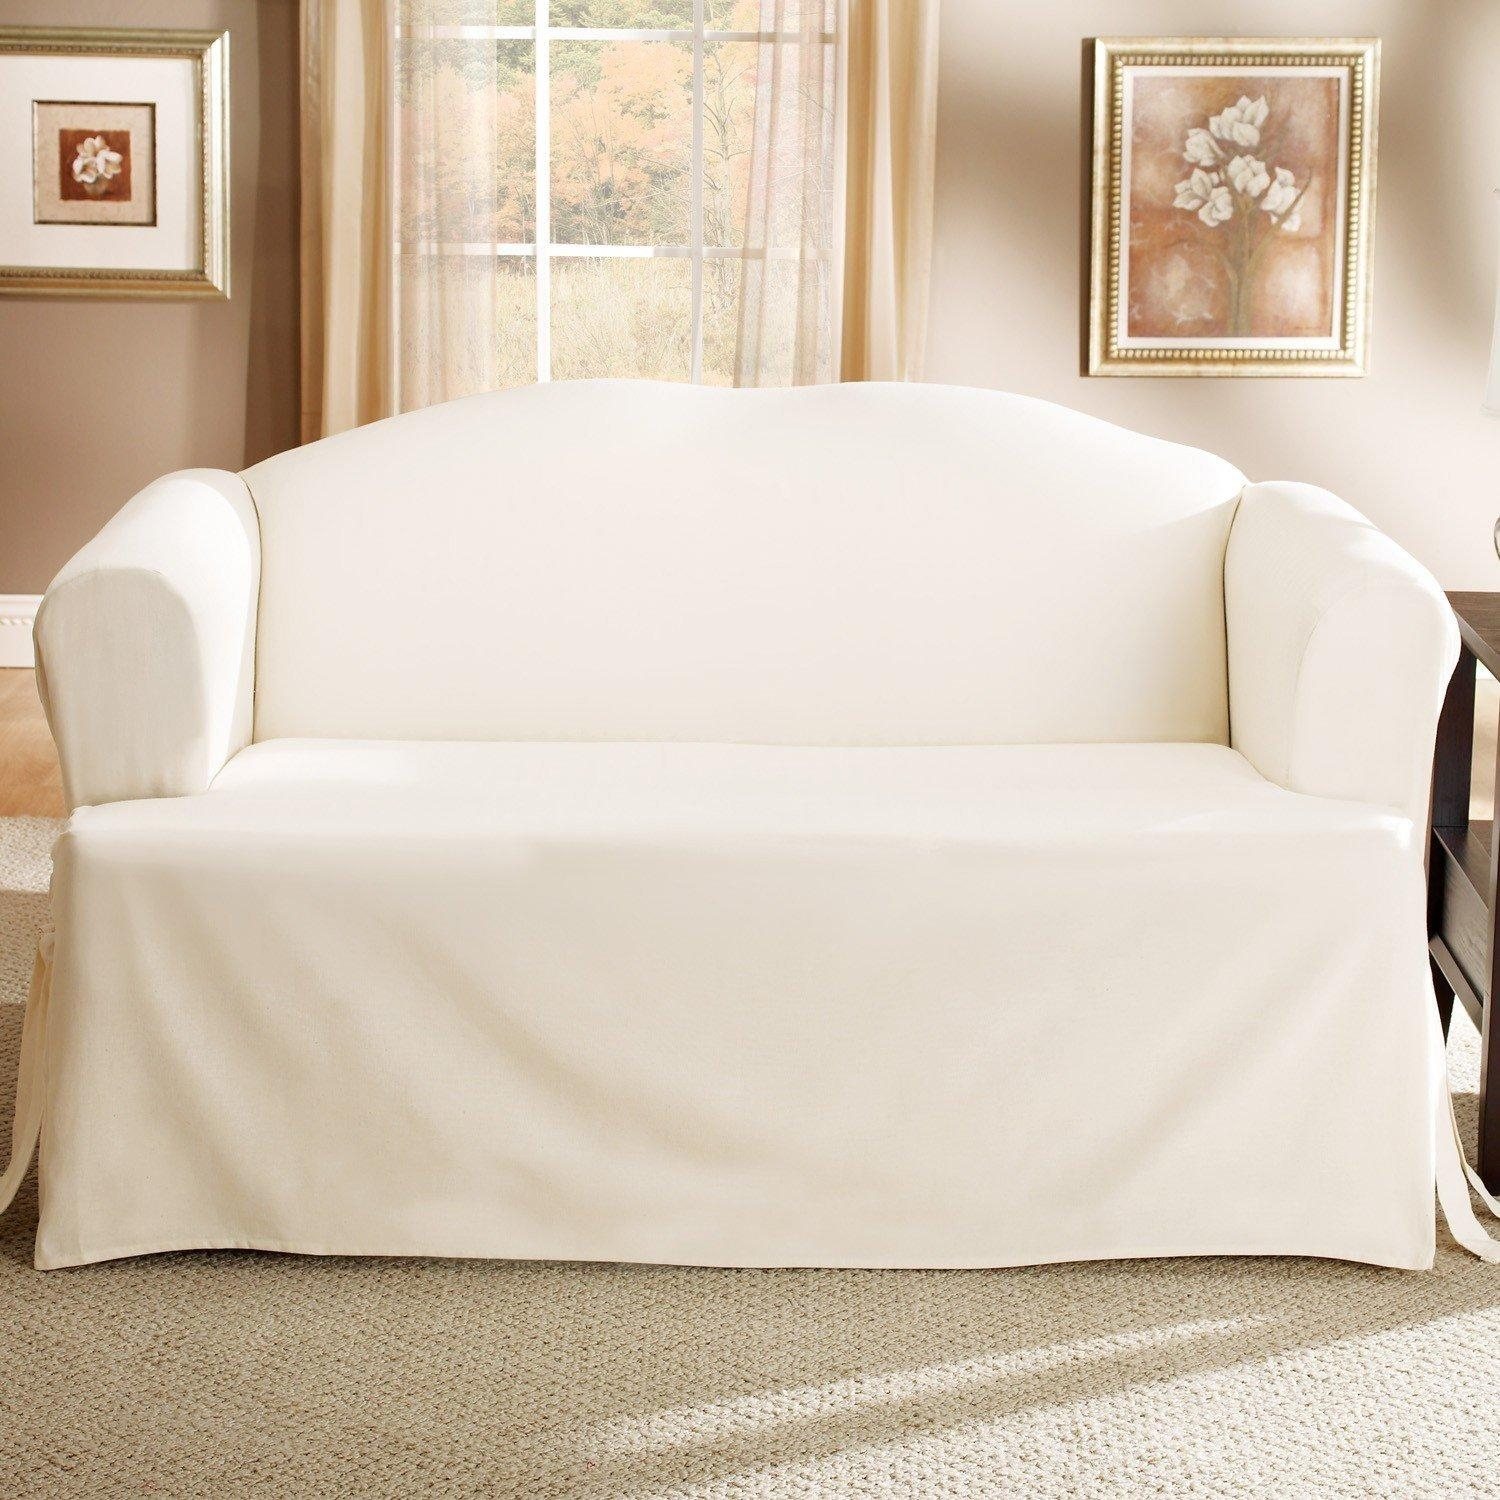 Living Room Armless Chair Slipcovers – Creditrestore With Regard To Armless Couch Slipcovers (Image 13 of 20)